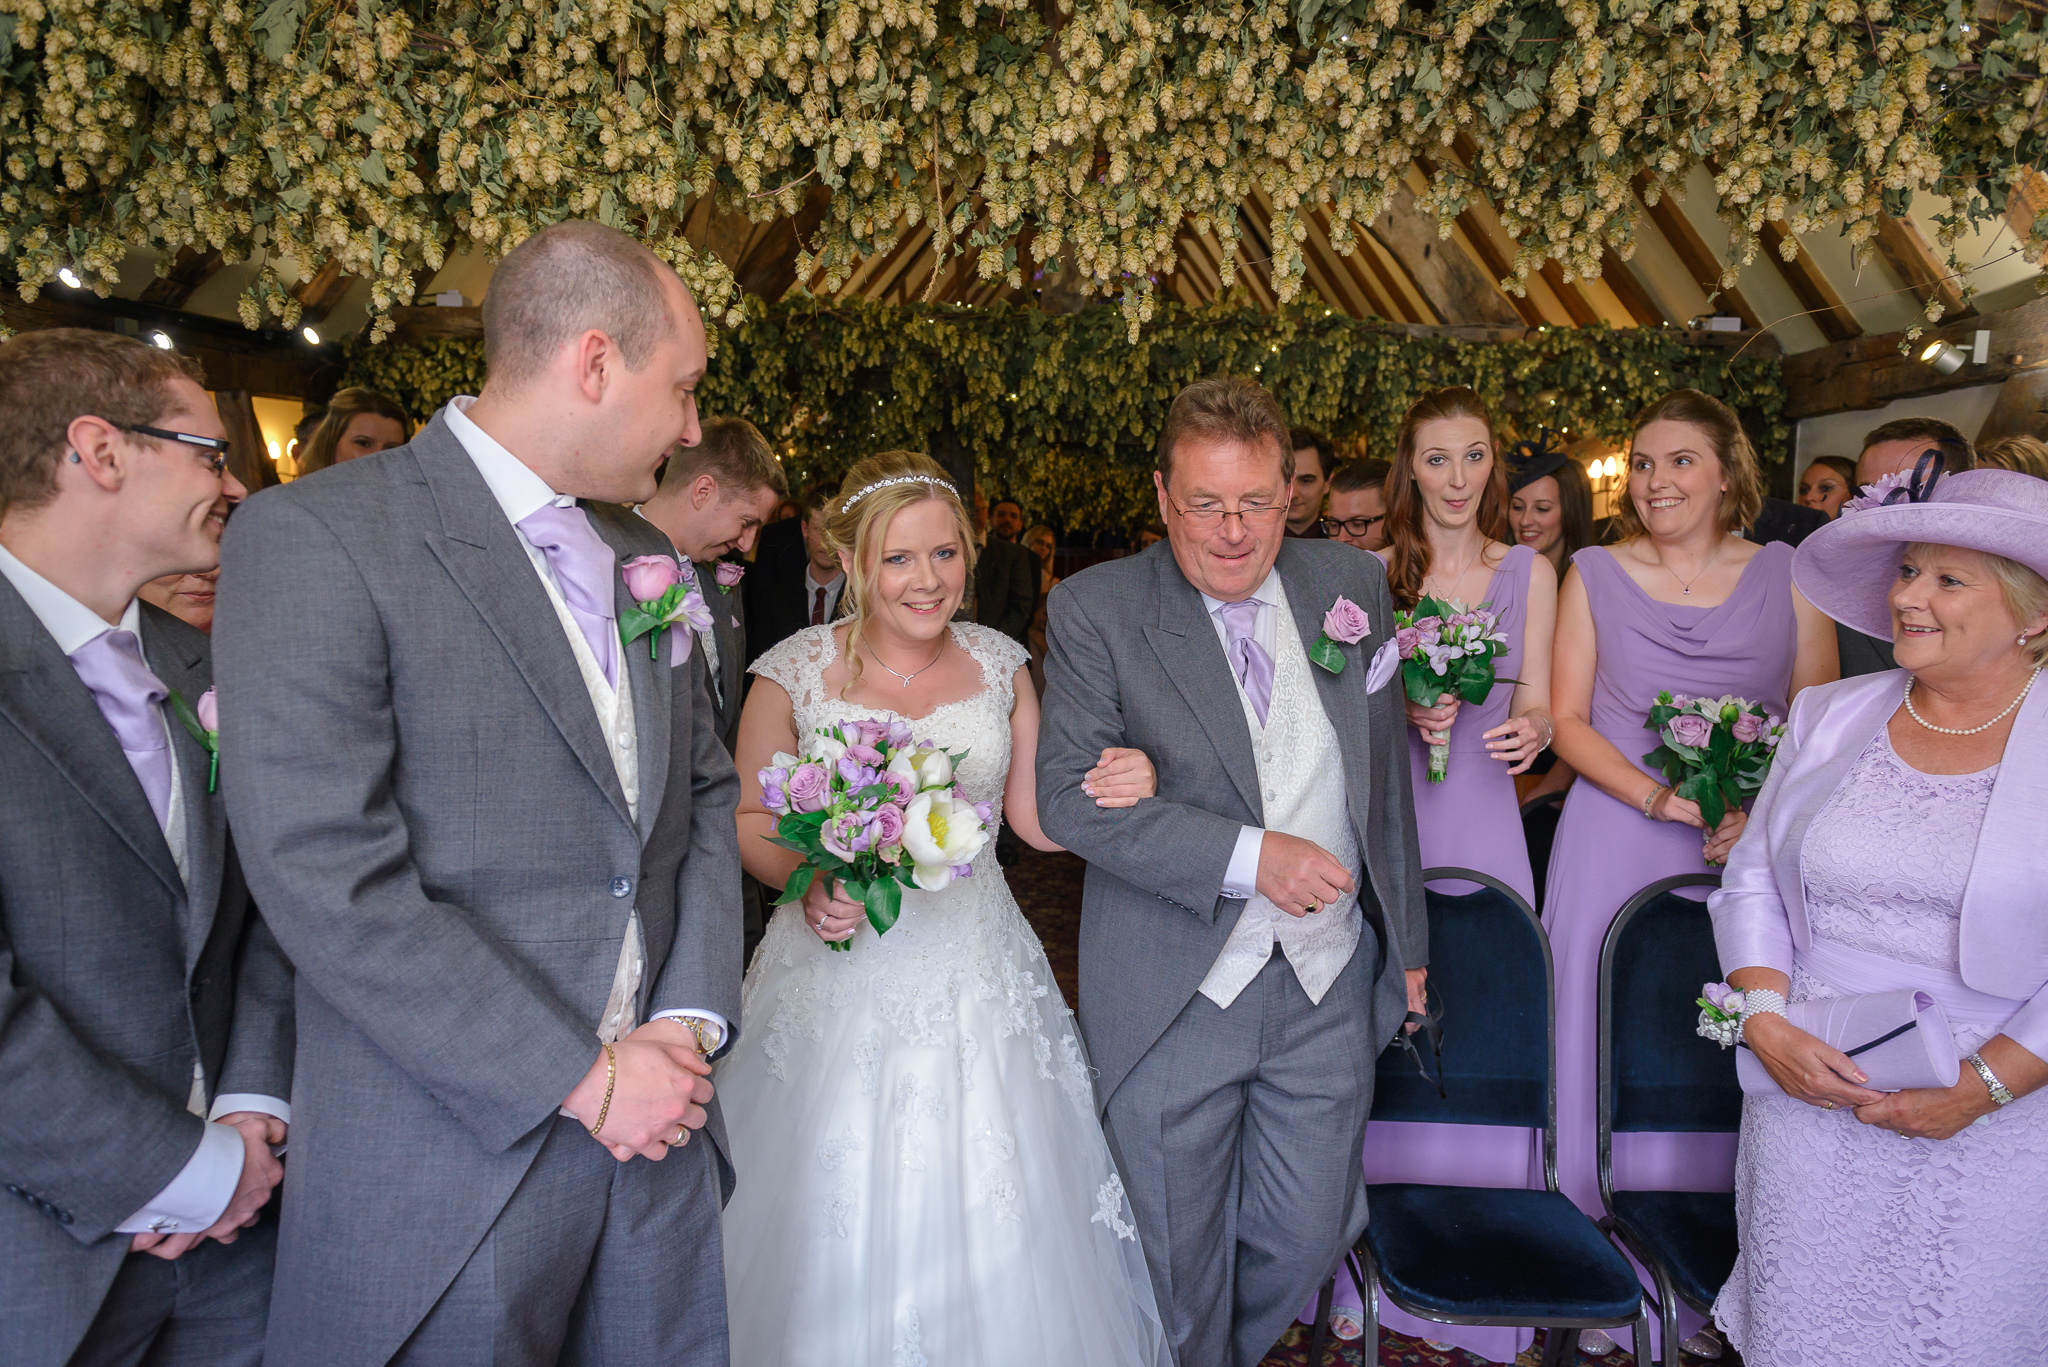 Faversham-Wedding-Jennifer-Andrew-23